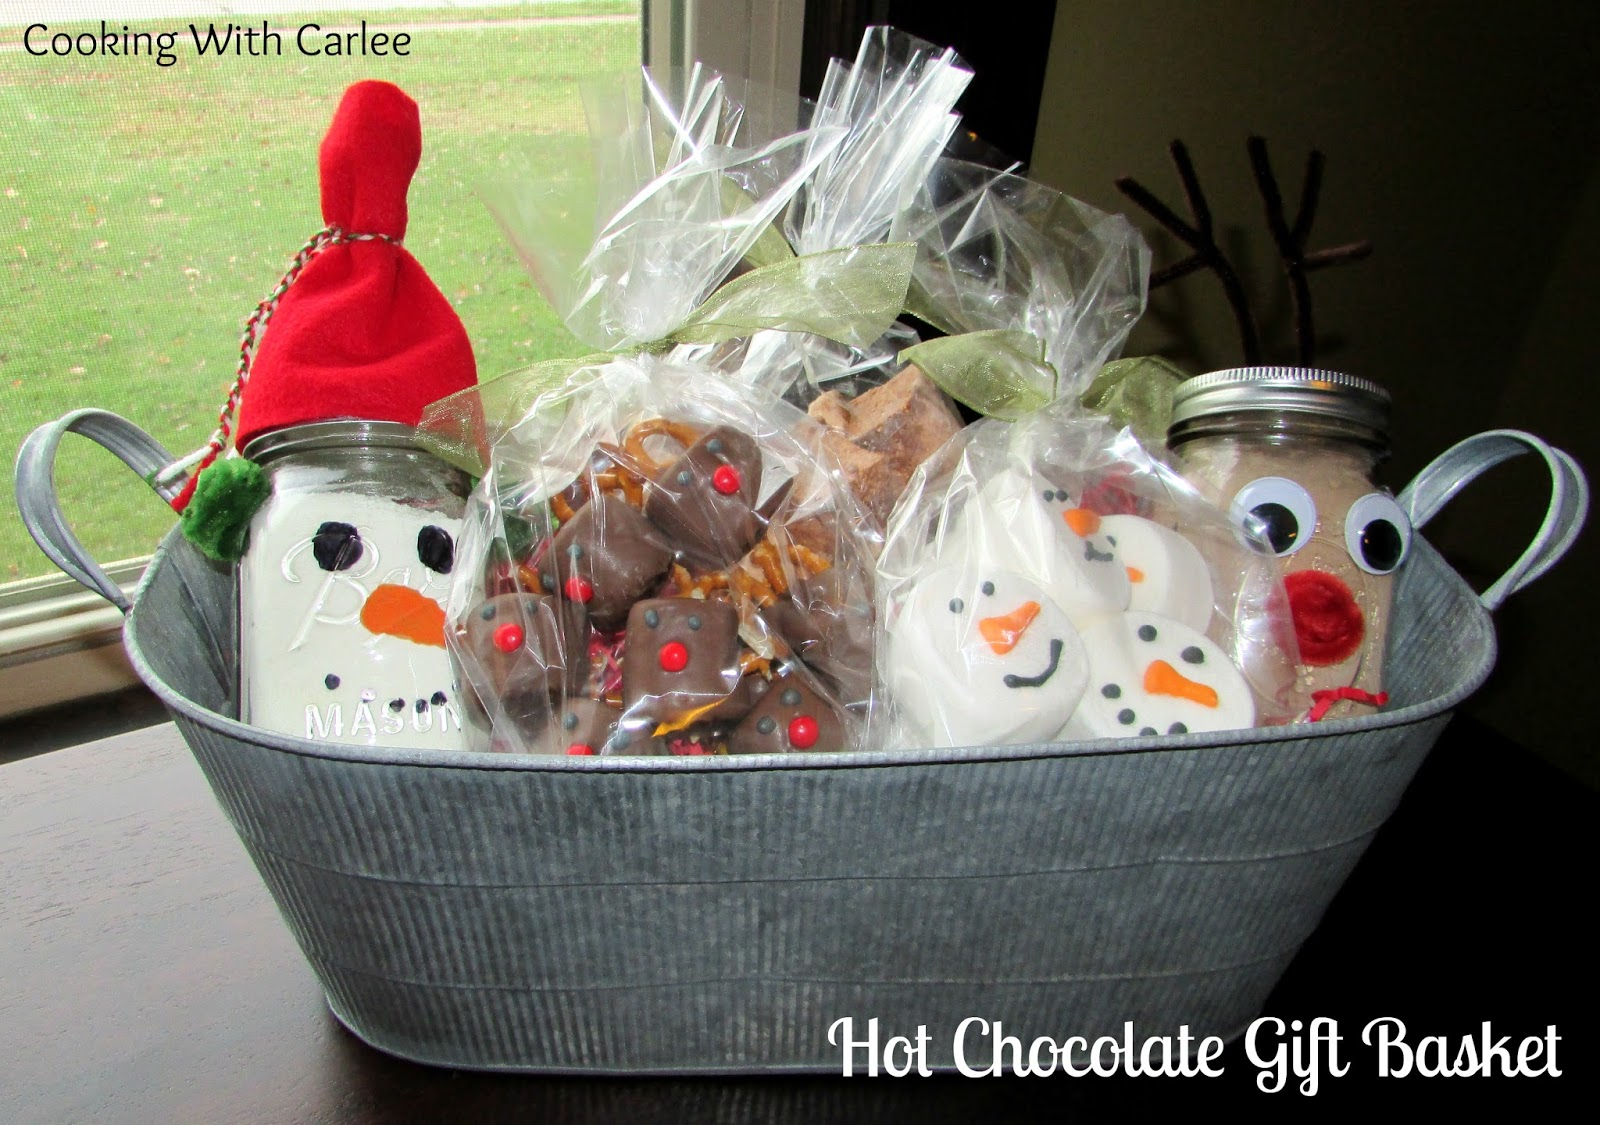 Cooking With Carlee: Hot Chocolate Gift Basket